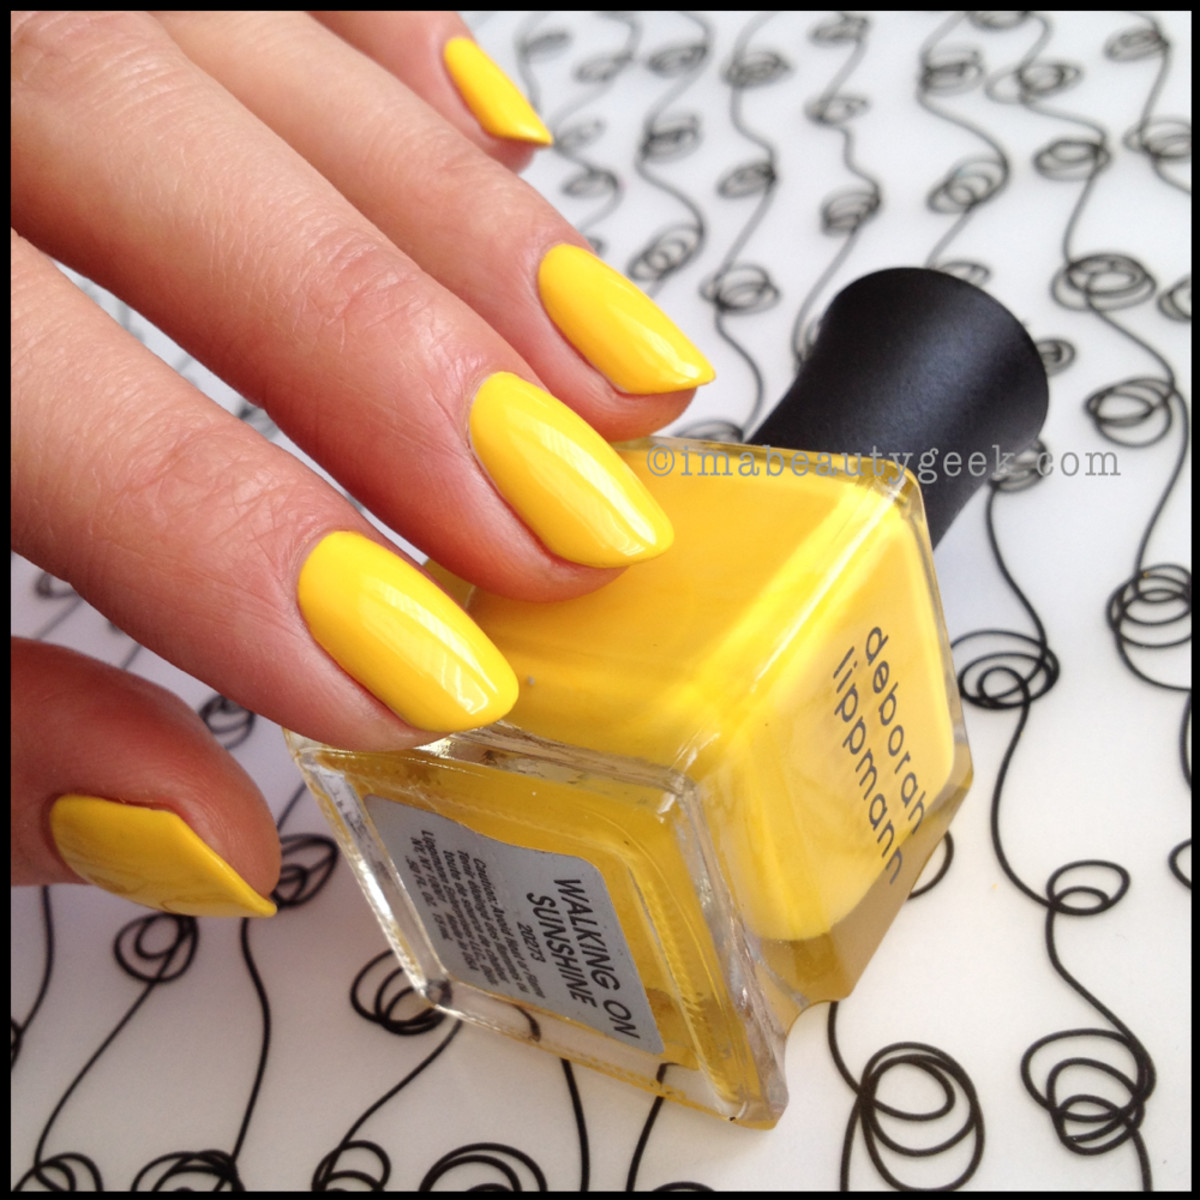 Deborah Lippmann Walking on Sunshine 80's Rewind